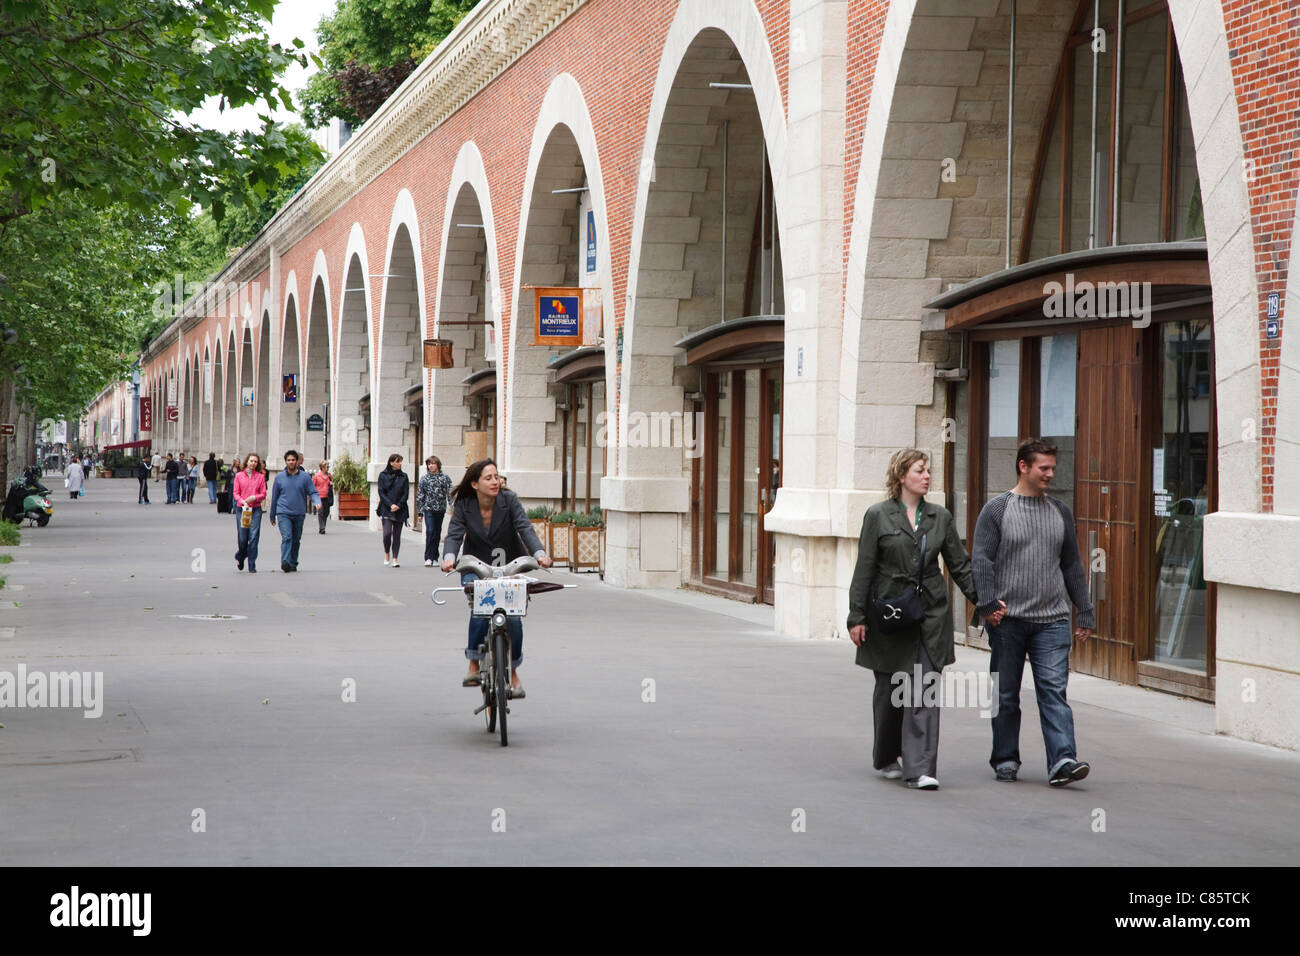 Le Viaduc des Arts, a former railway viaduct in Paris is now a garden walkway with galleries in its arches. Stock Photo